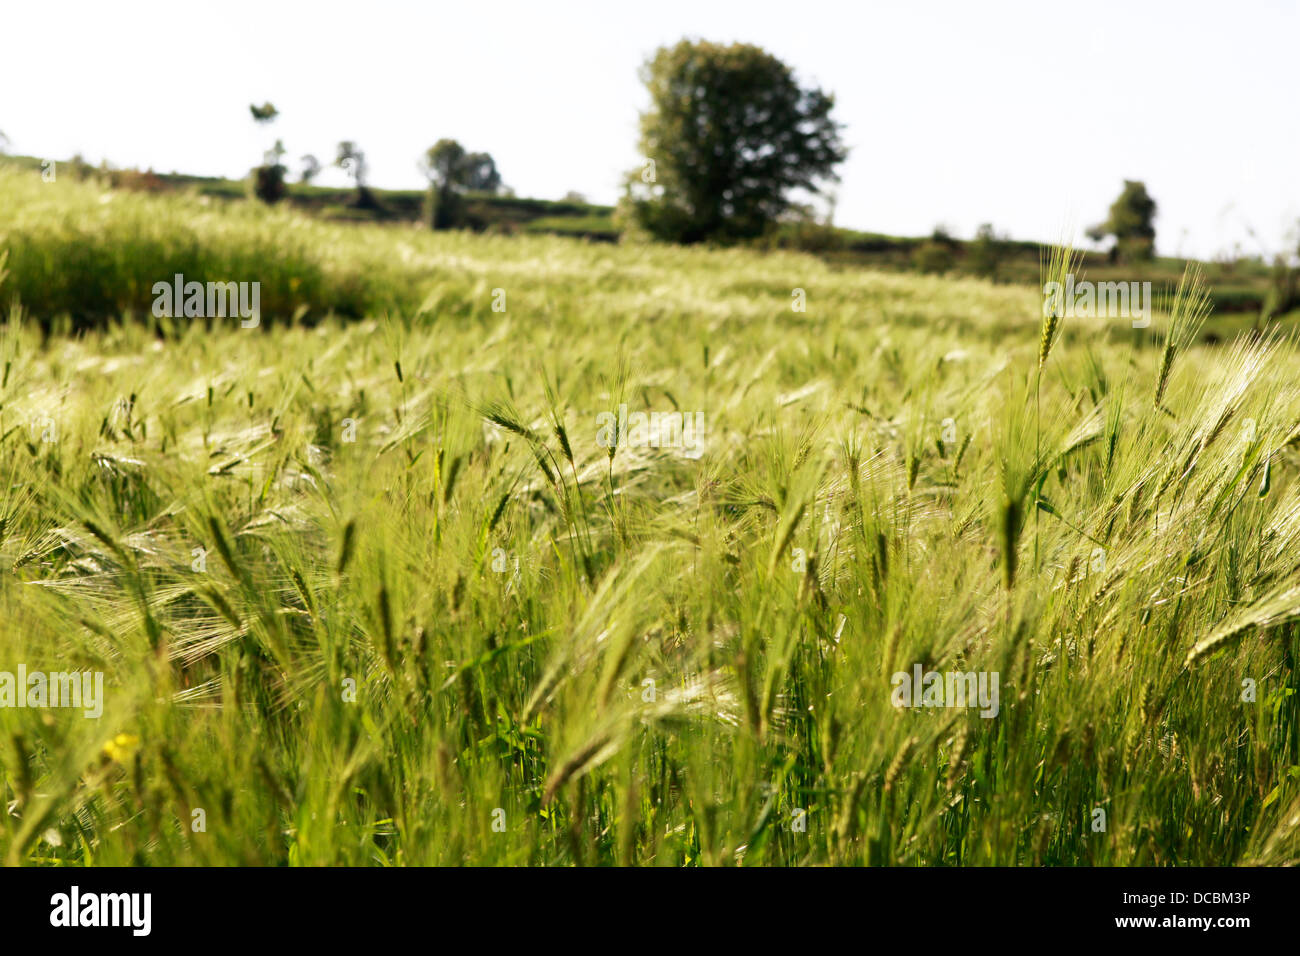 Long grass blows in the wind in Mcleod Ganj, India - Stock Image